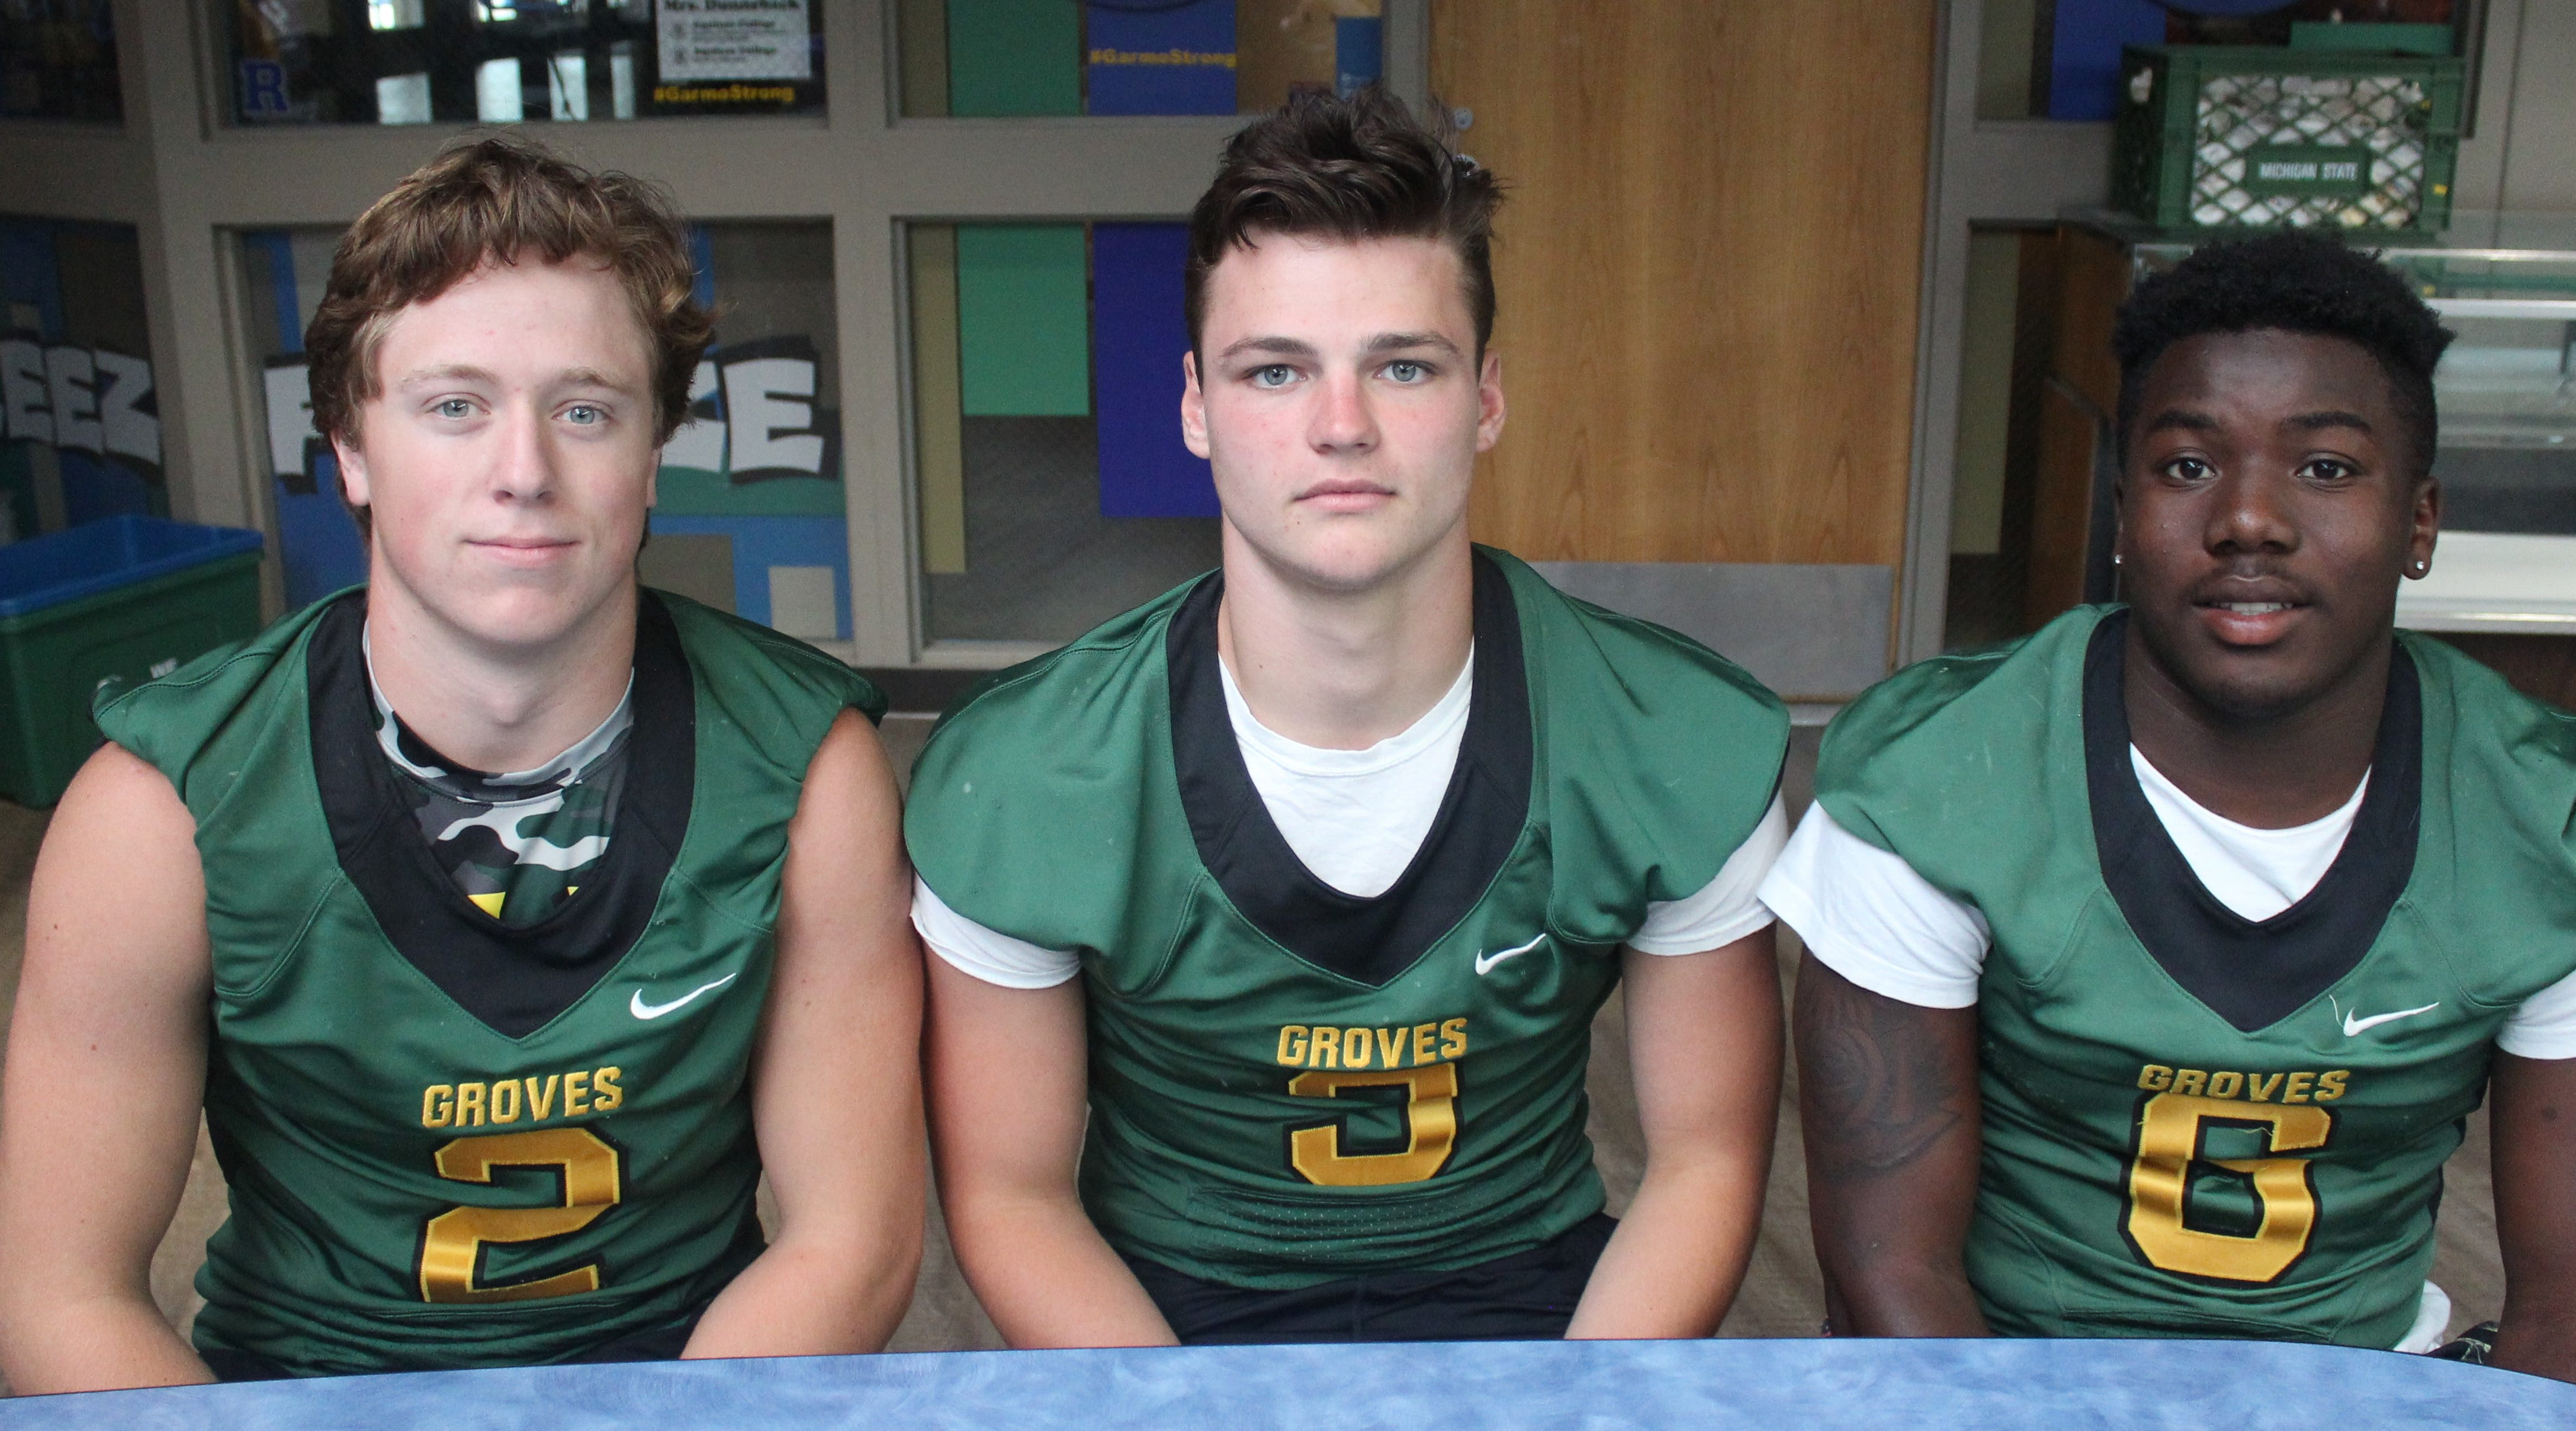 Groves, Bloomfield Hills and Seaholm gear for 2018 football season